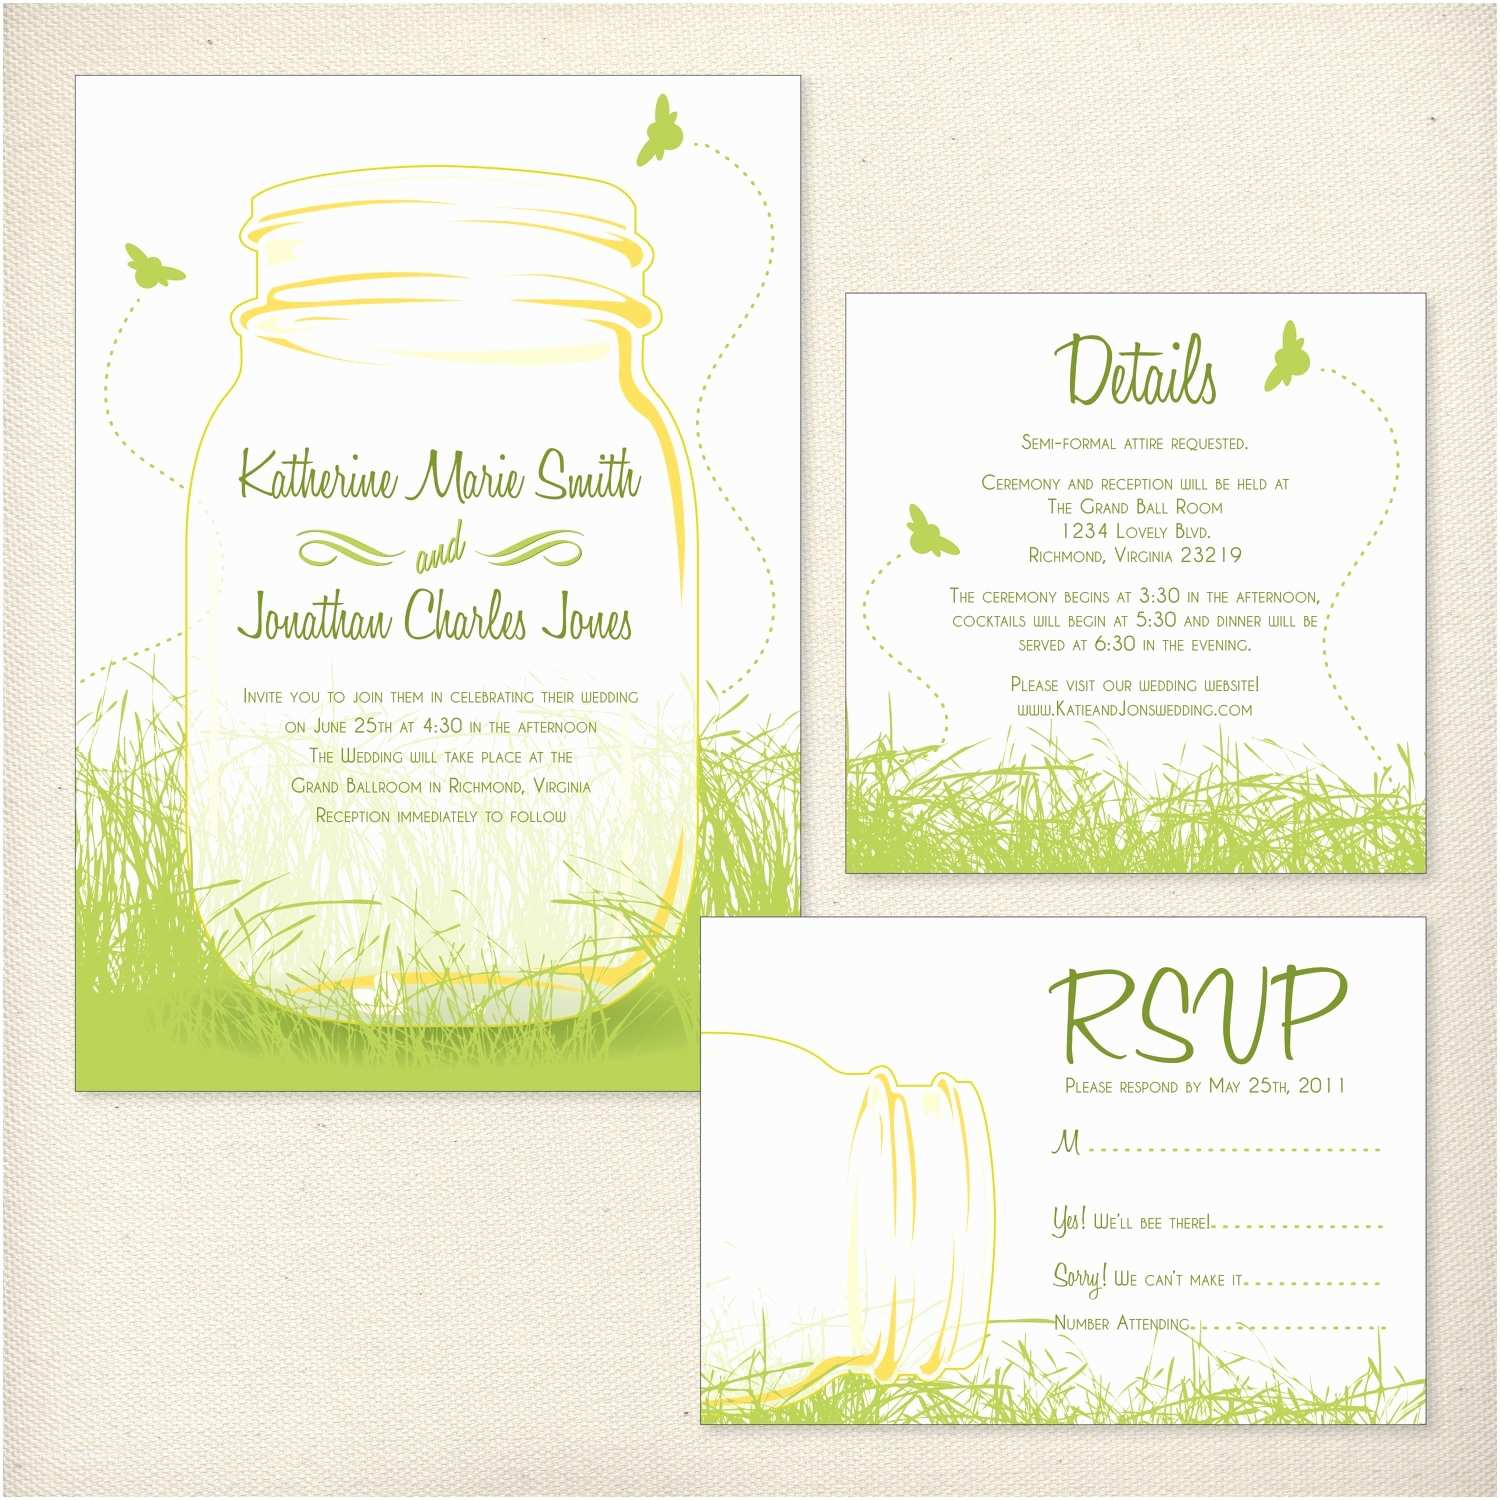 How to Print Out Wedding Invitations How to Make Wedding Invitations Costco Ideas with Smart